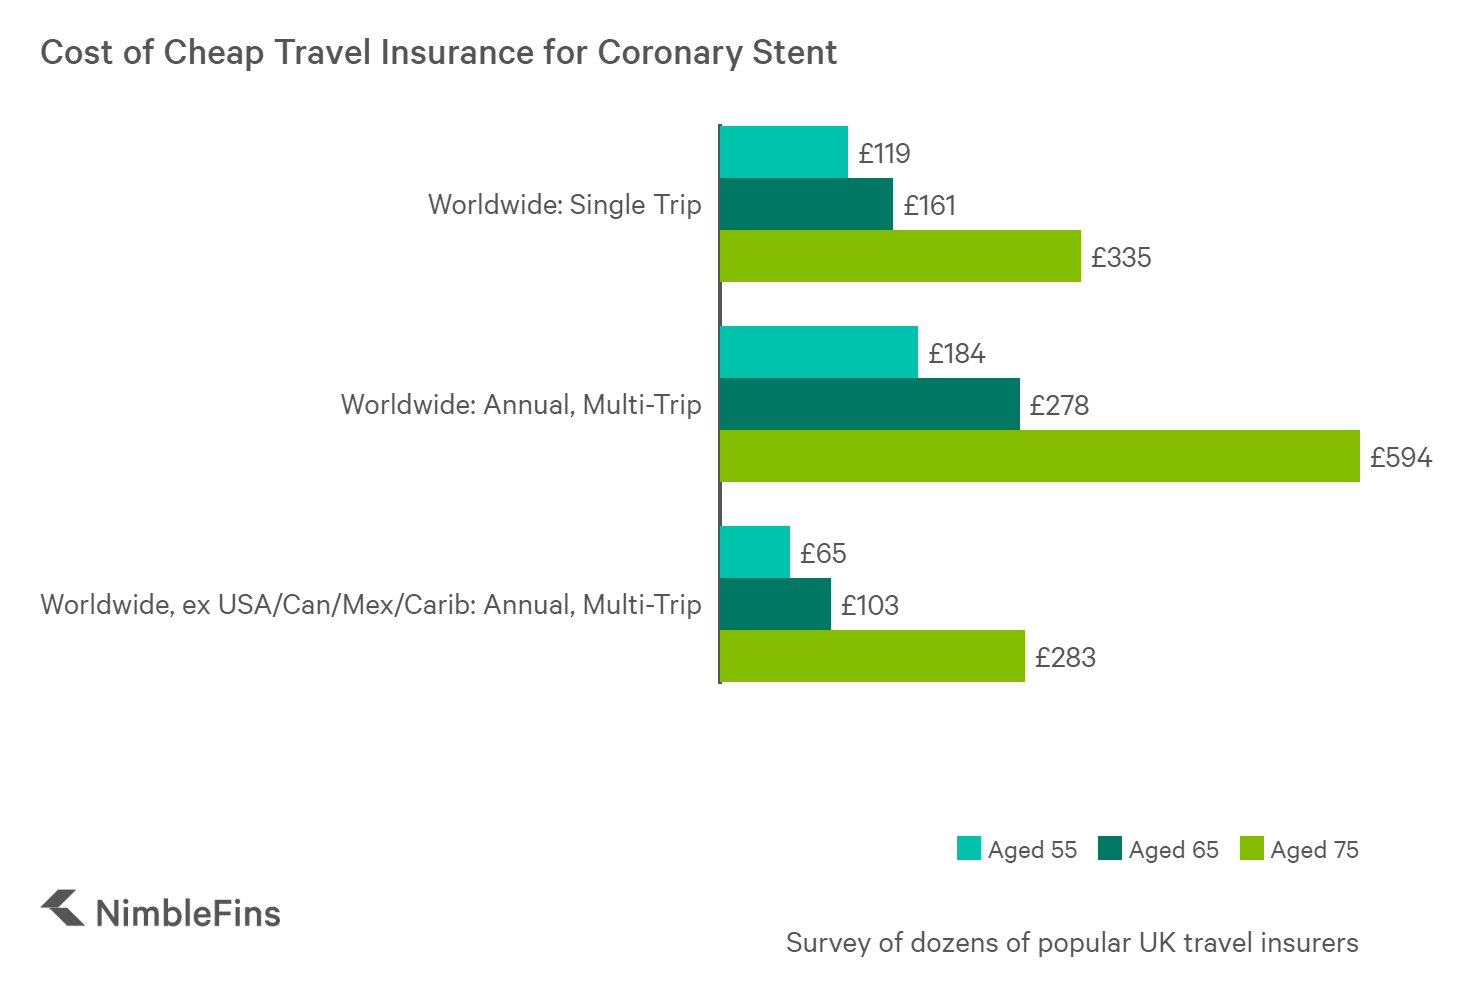 chart showing the cost of travel insurance for individuals with a coronary stent